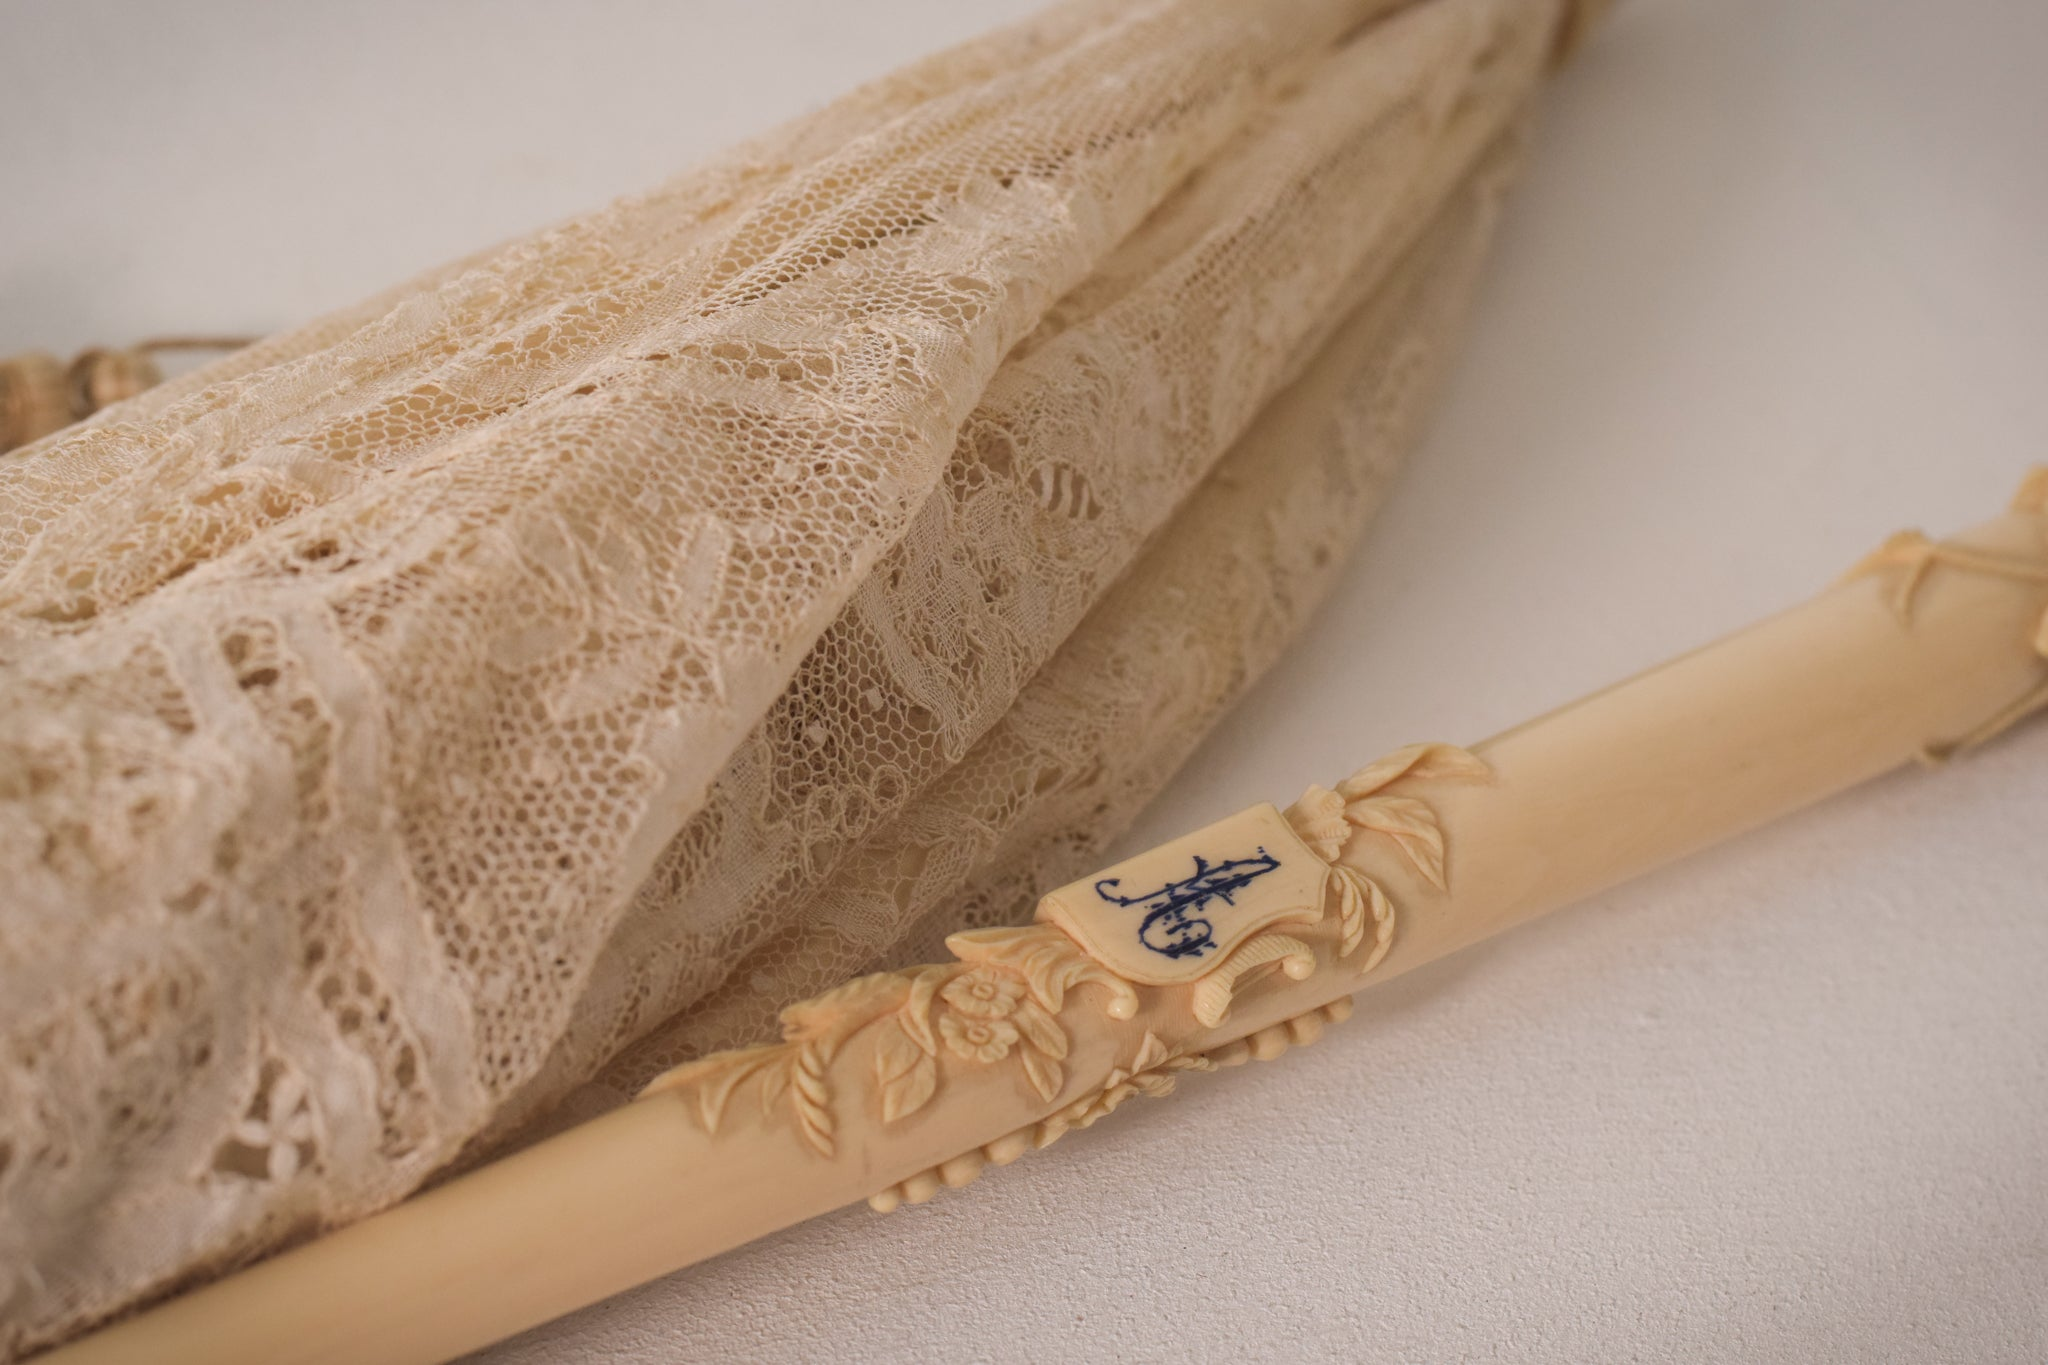 Beautifully carved ivory Folding handle Parasol With Exquisite Lacework Monogramed 'A'